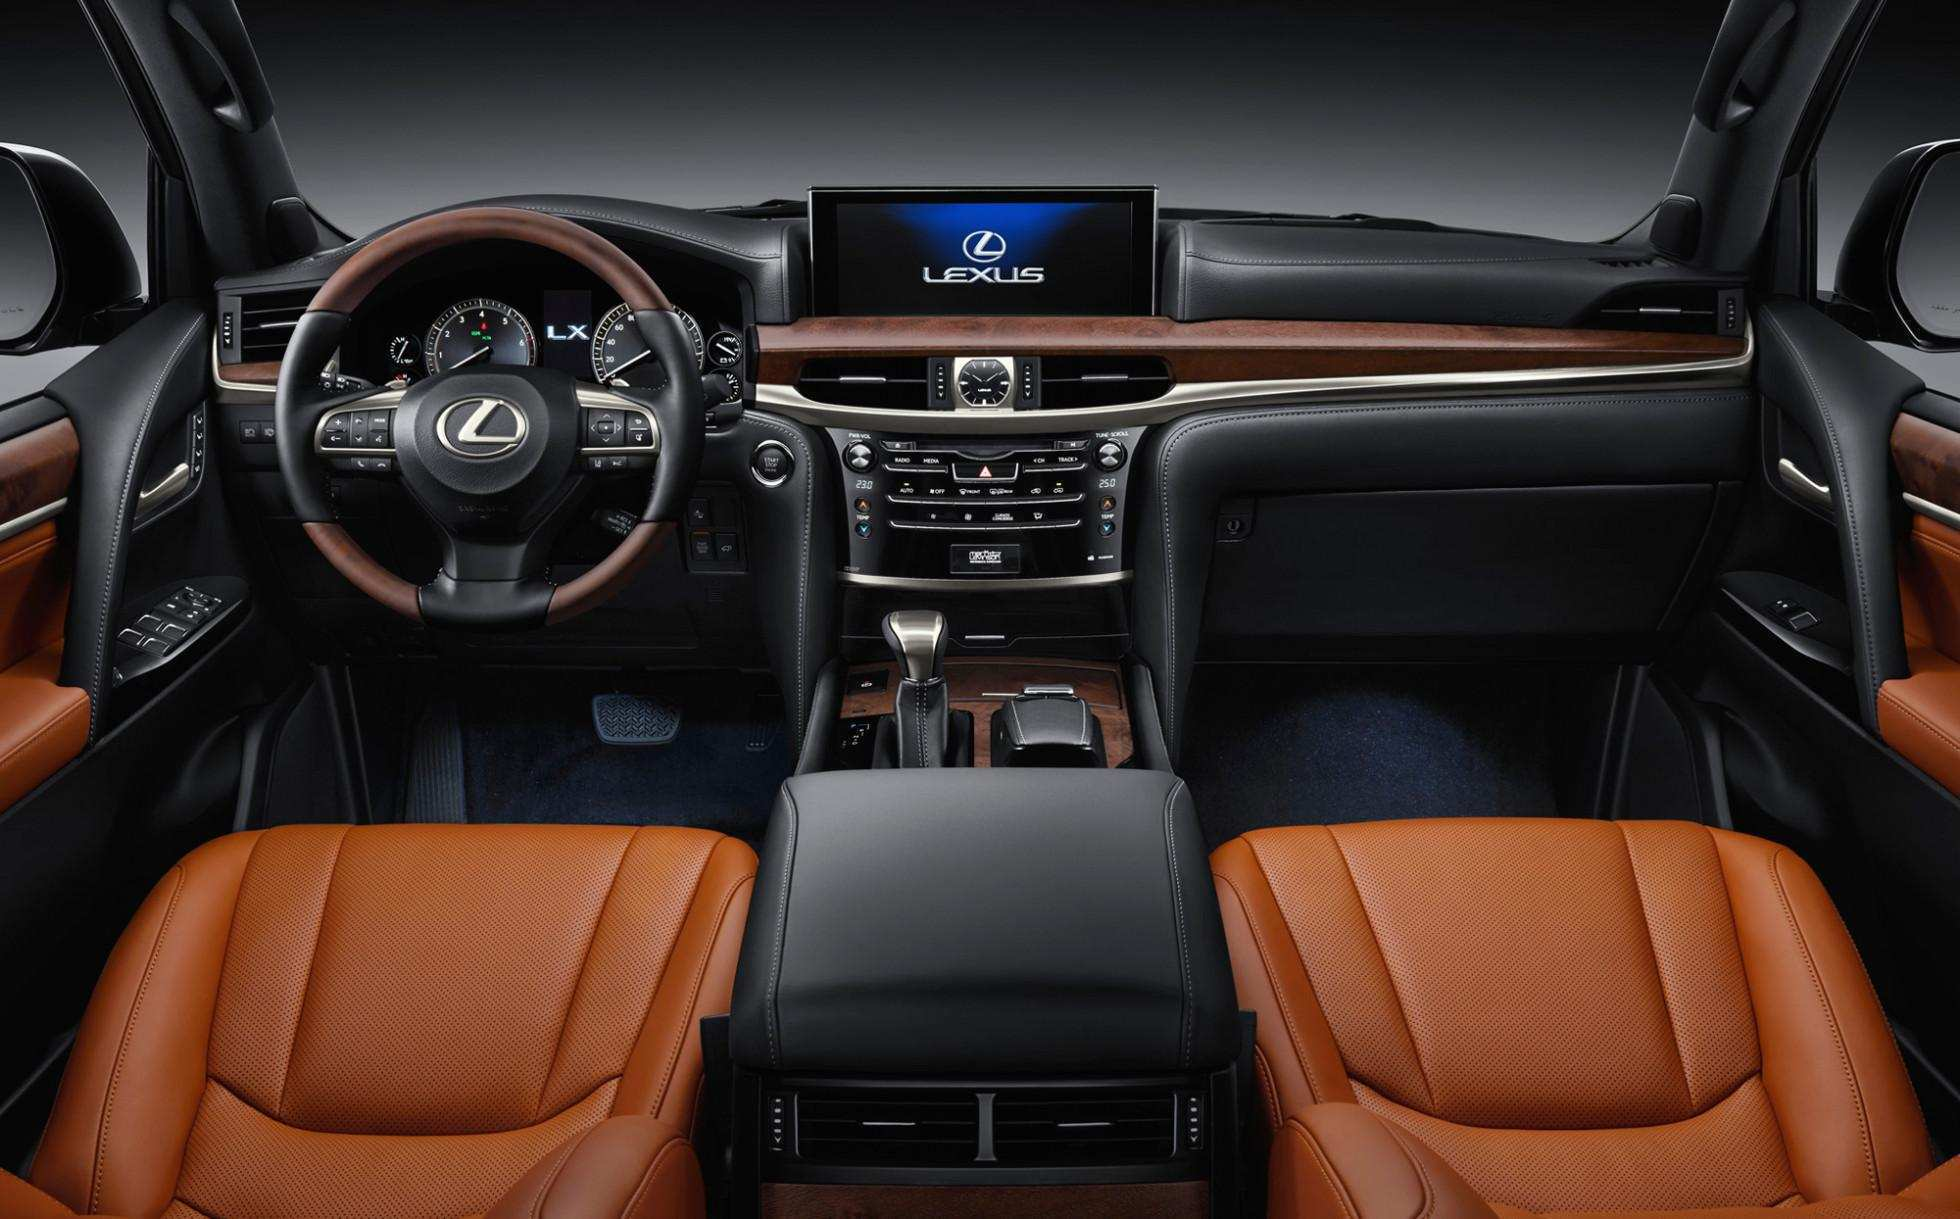 82 The Best Lexus Lx 2019 Interior Price And Review